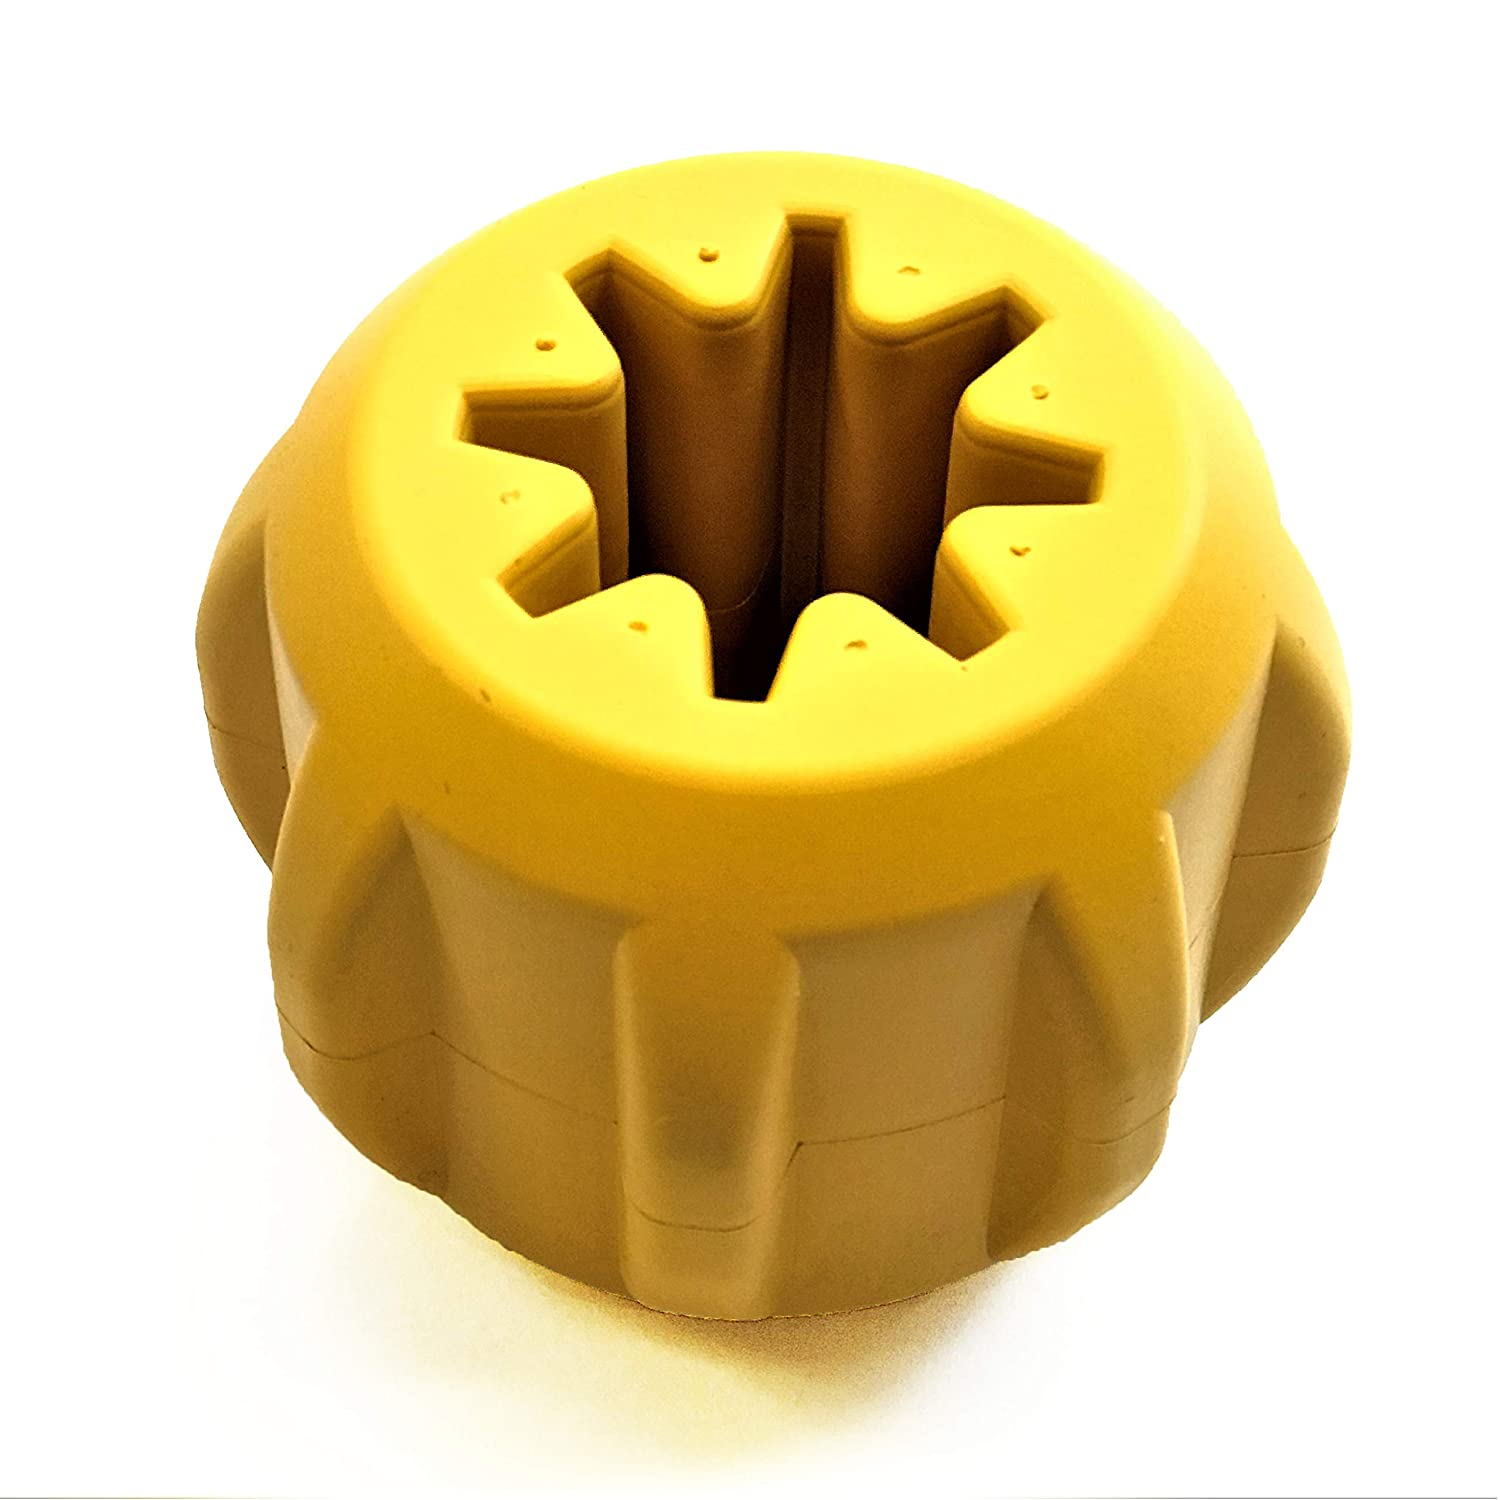 Industrial Dog by SodaPup Natural Rubber Treat Pocket Fetch & Dental Chew Toy Yak Chew Holder Made in USA for Heavy Chewers Yellow Large